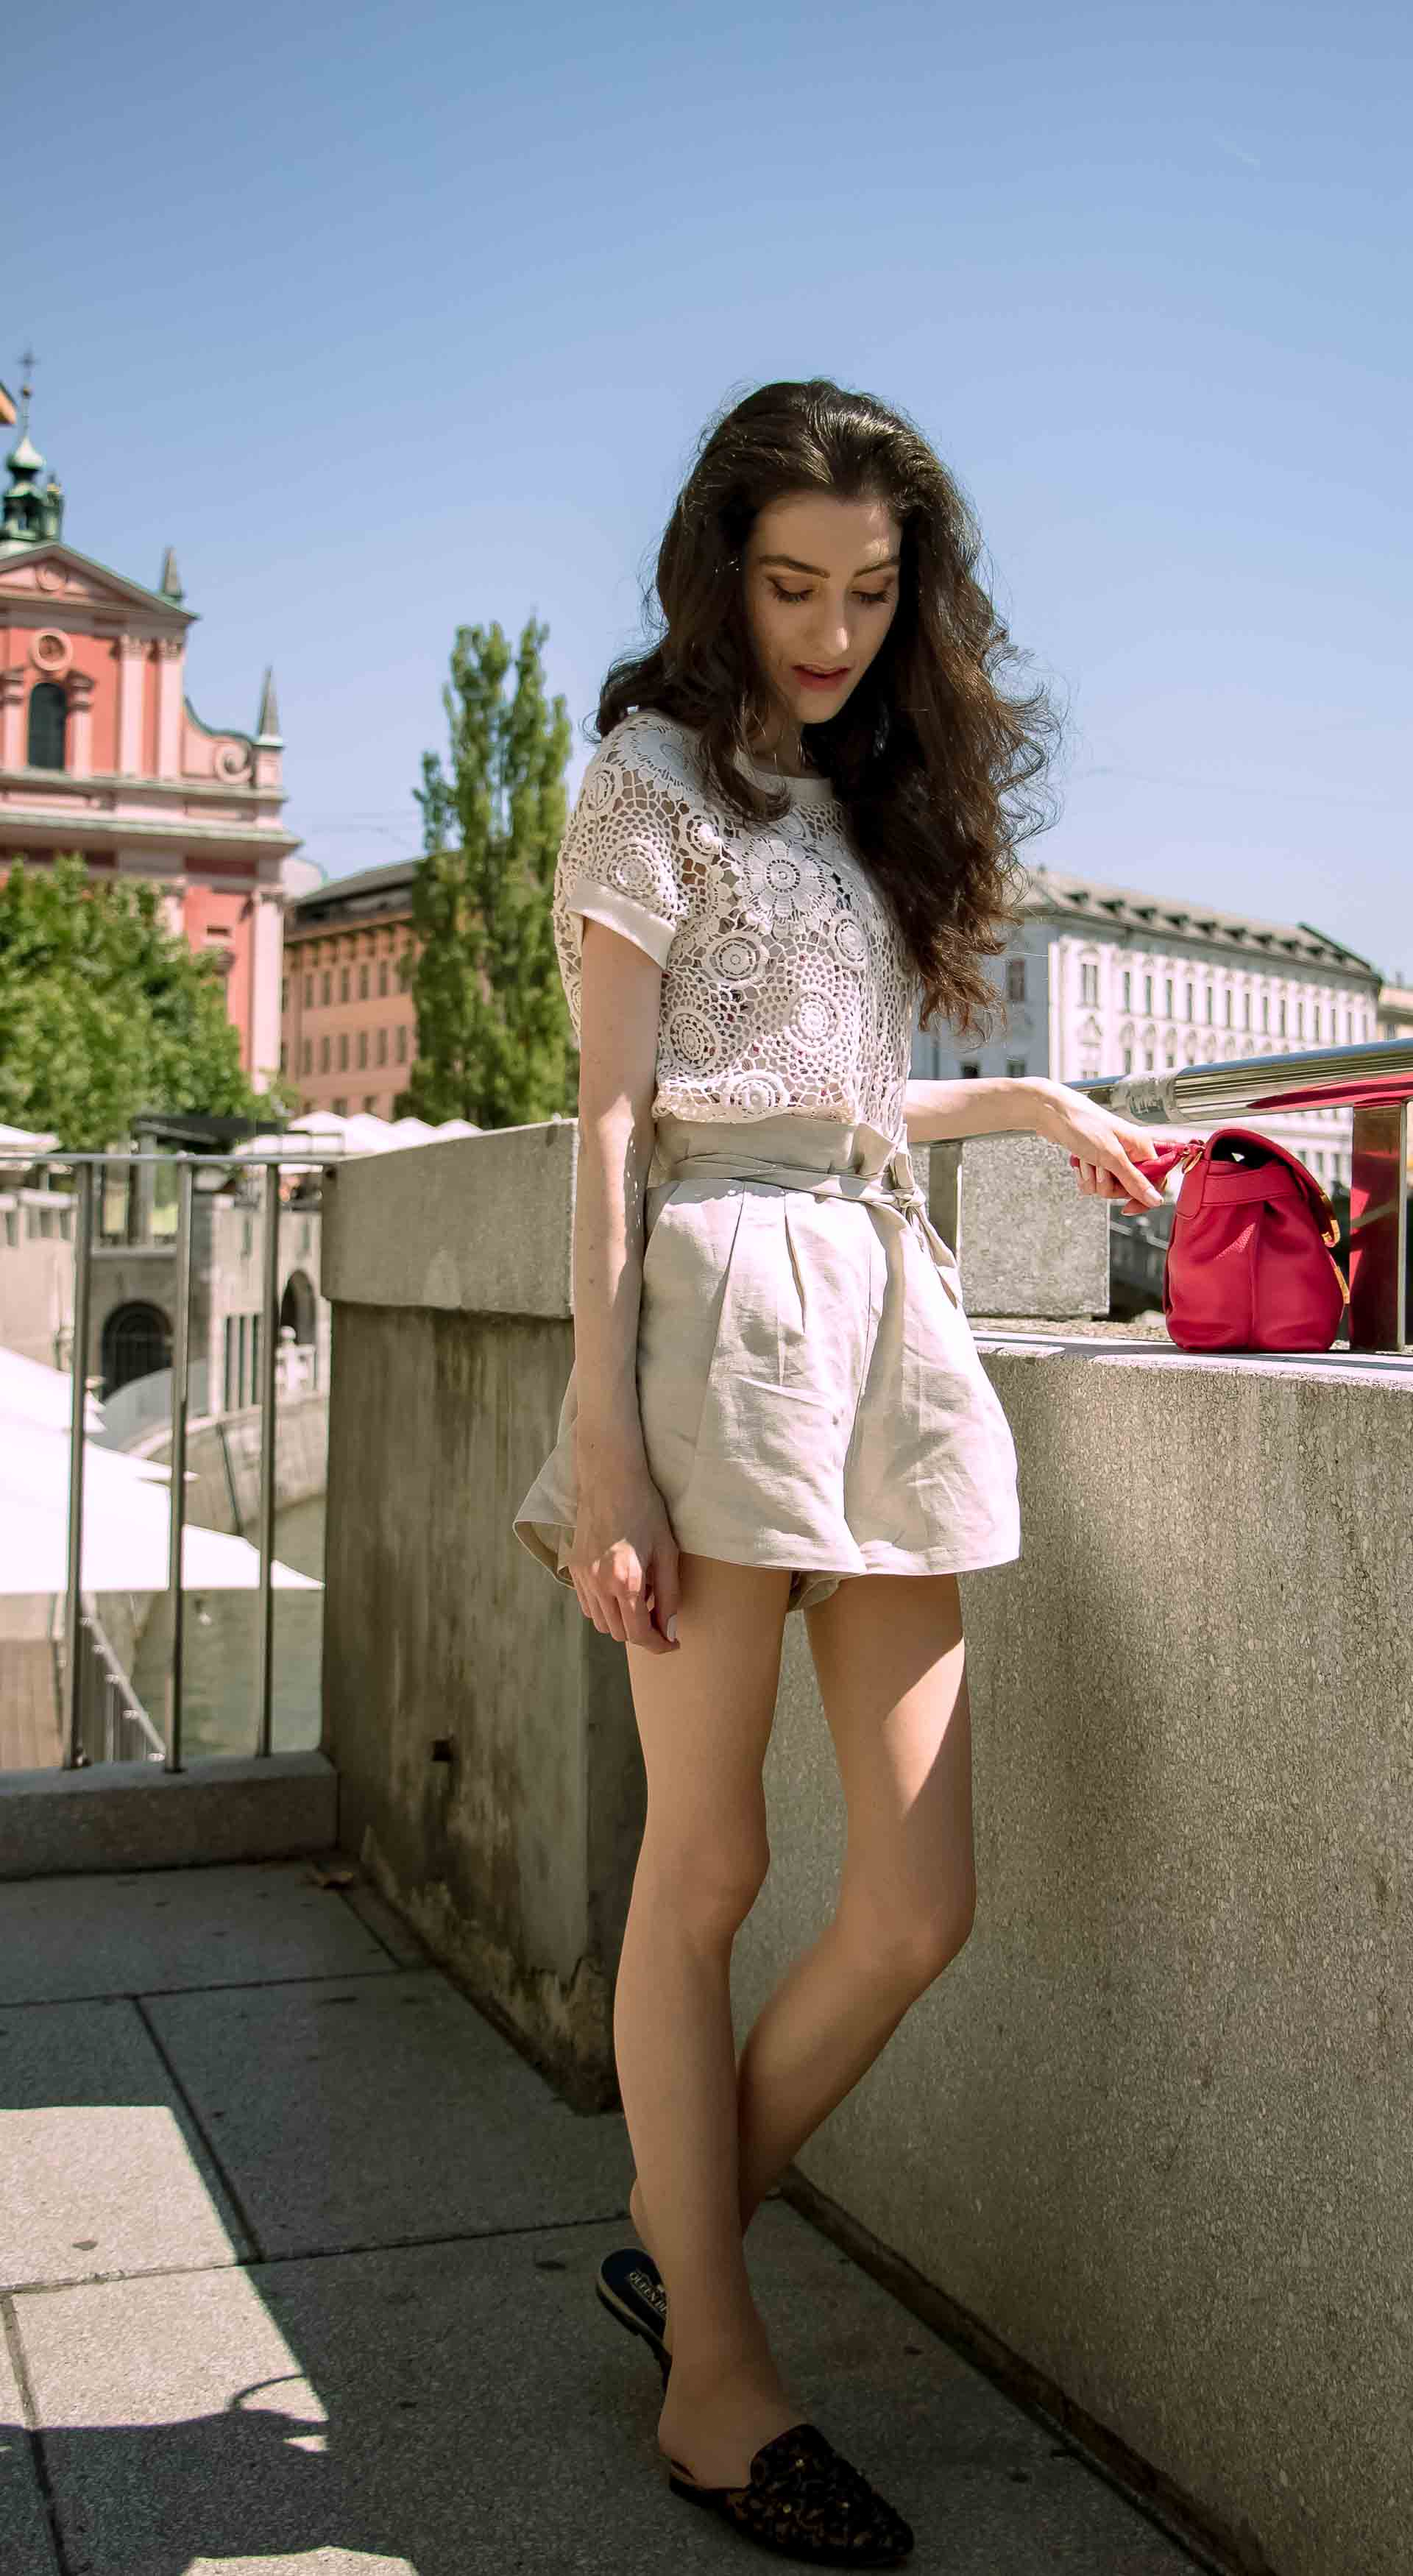 Beautiful Slovenian Fashion Blogger Veronika Lipar of Brunette from Wall wearing beige linen shorts, crochet top, black slip-ons shoes, pink top handle bag, standing on the street in Ljubljana